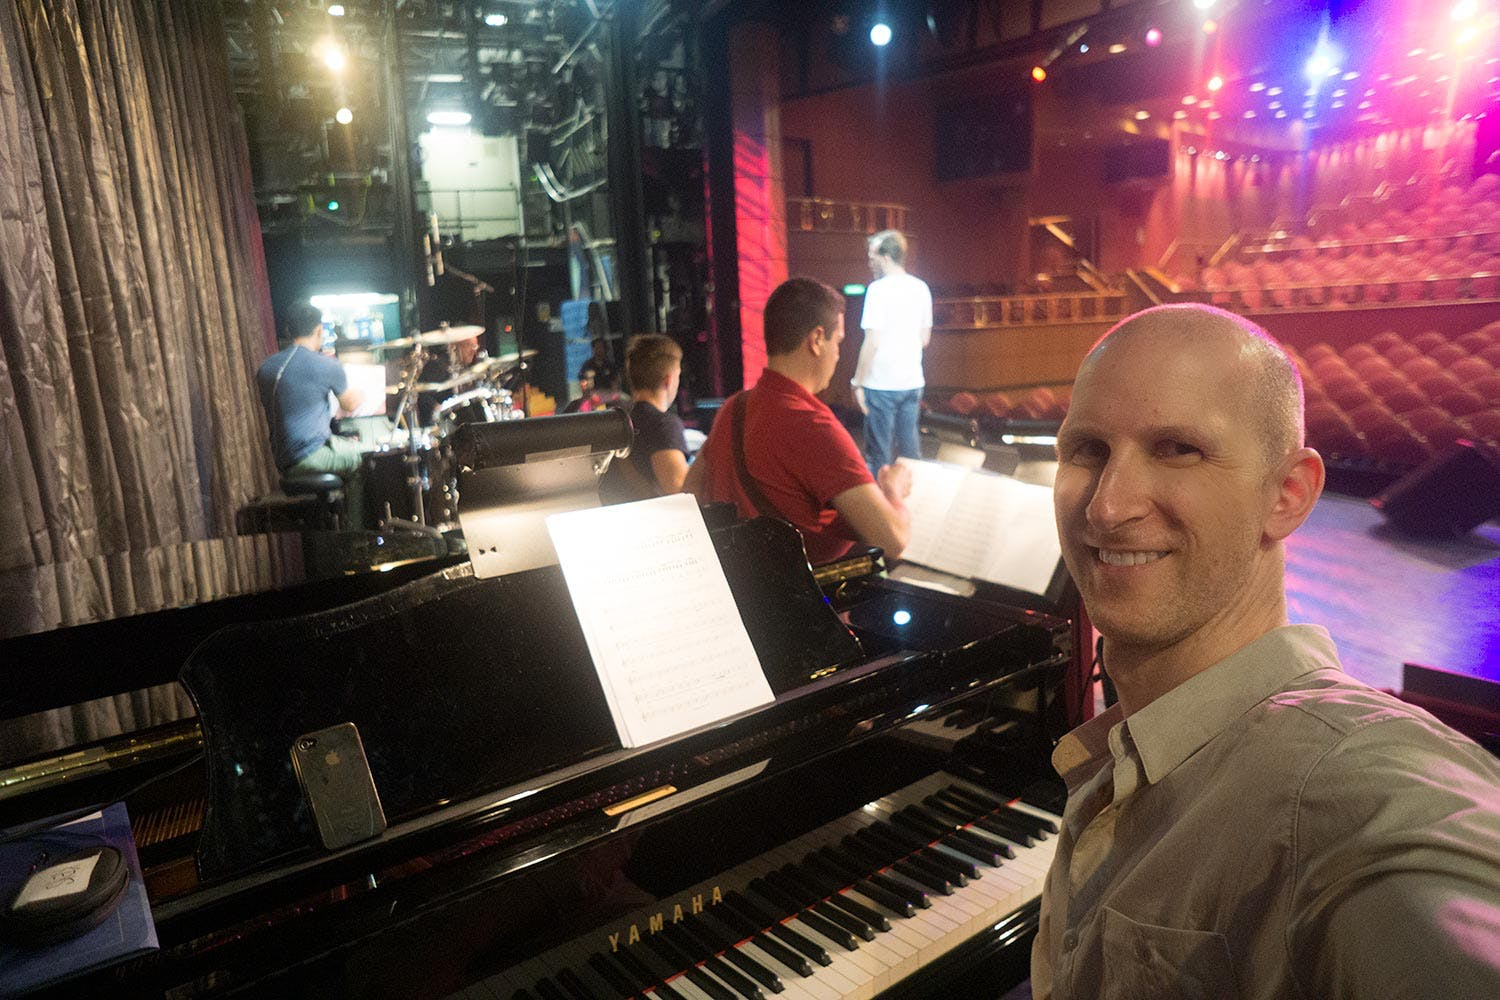 Vancouver Voice Teacher and Professional Musician Courtenay Ennis at Grand Piano in Show Rehearsal in Large Theatre.jpg